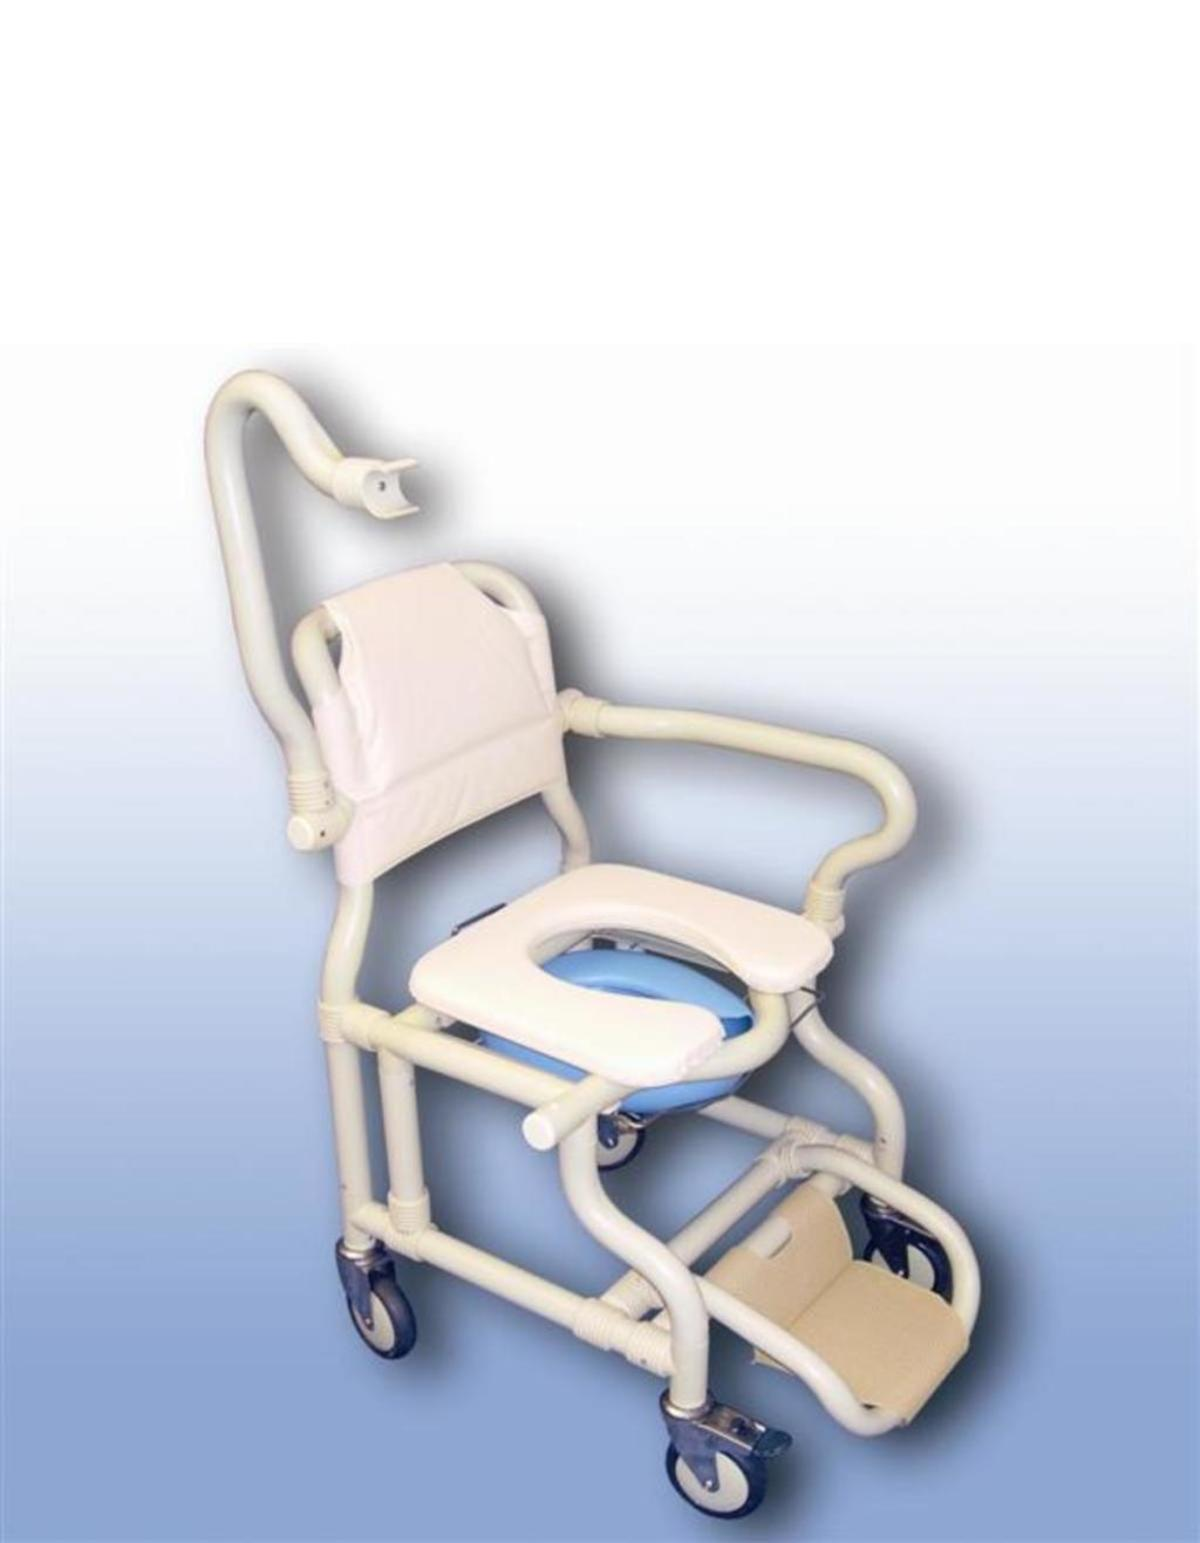 Large Deluxe Mobile Shower Chair With Pan Panholder